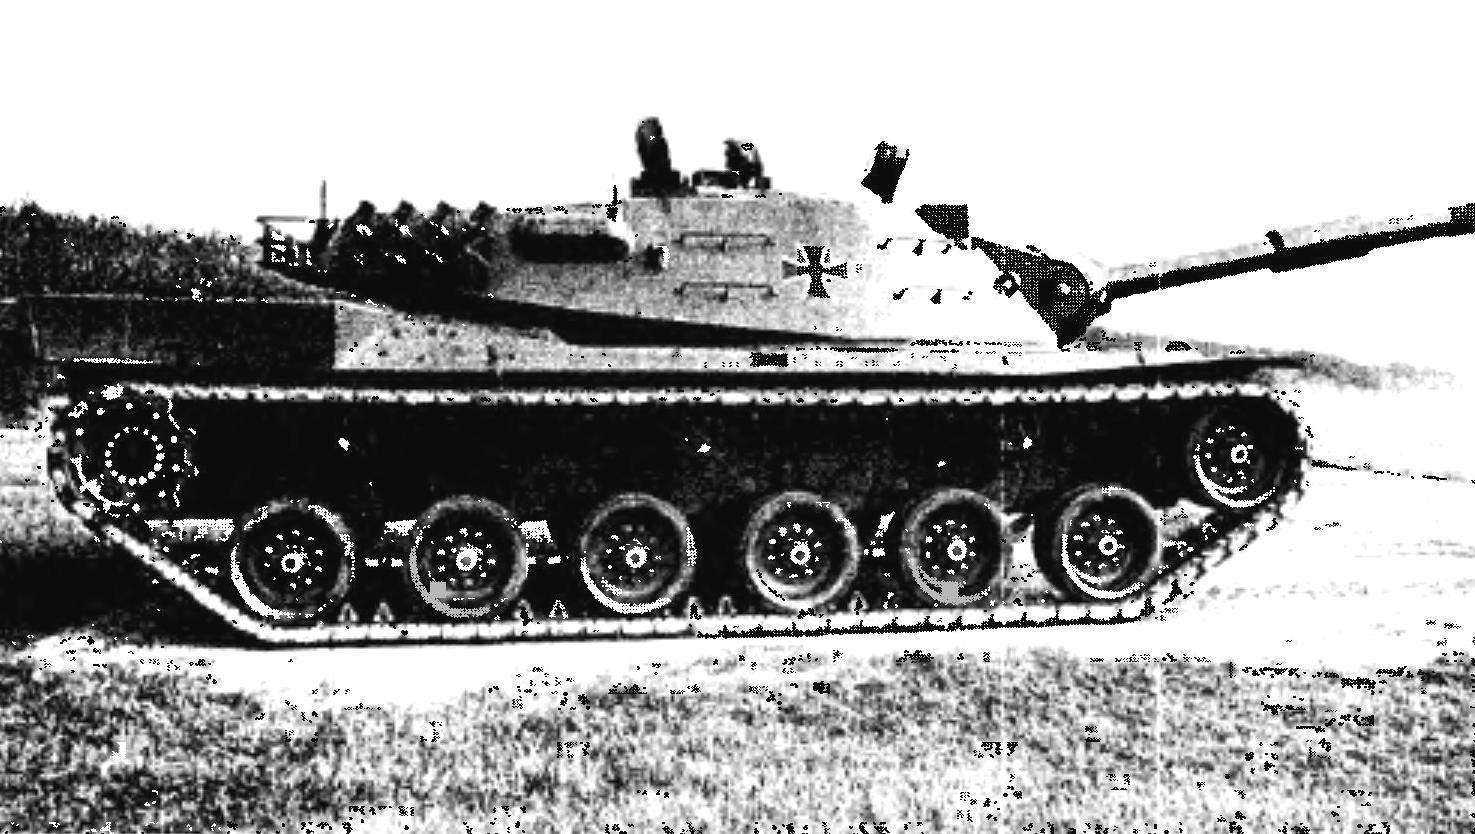 The West German version of the tank, MBT-70